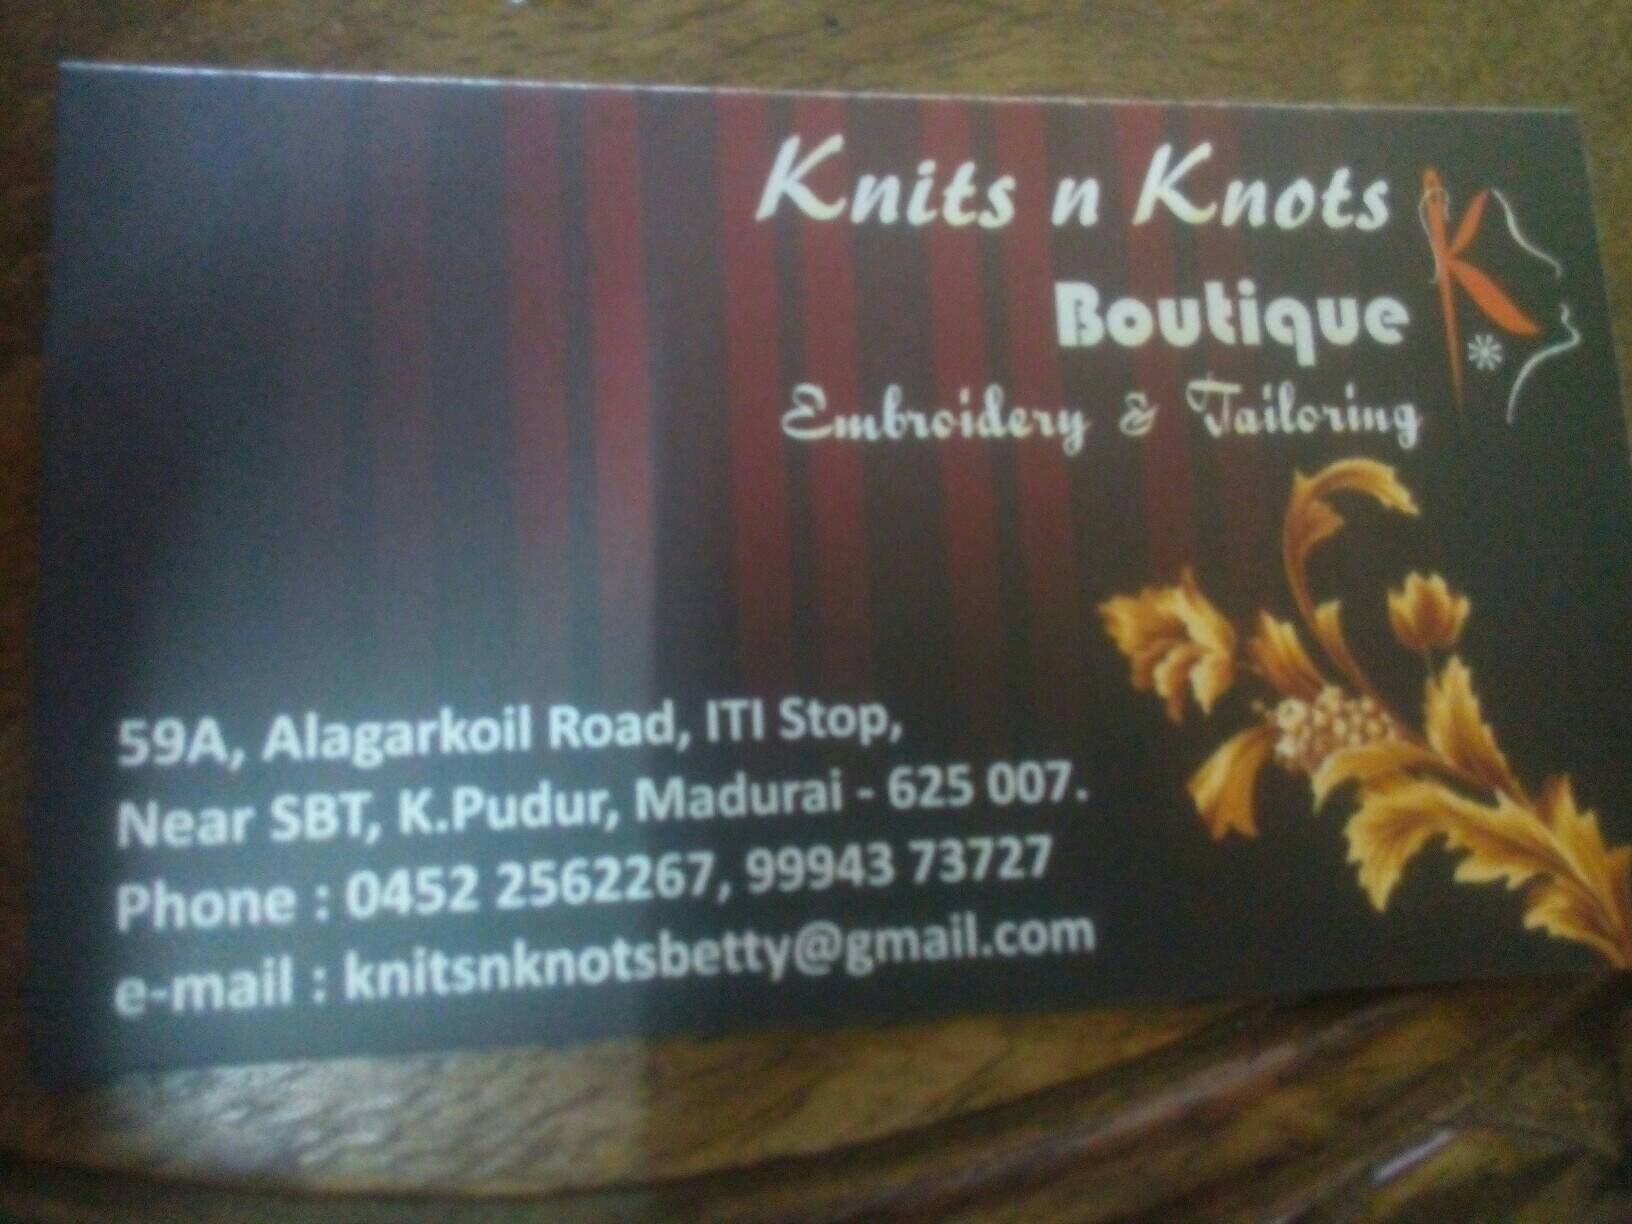 Knits n knots boutique 9994373727 - logo